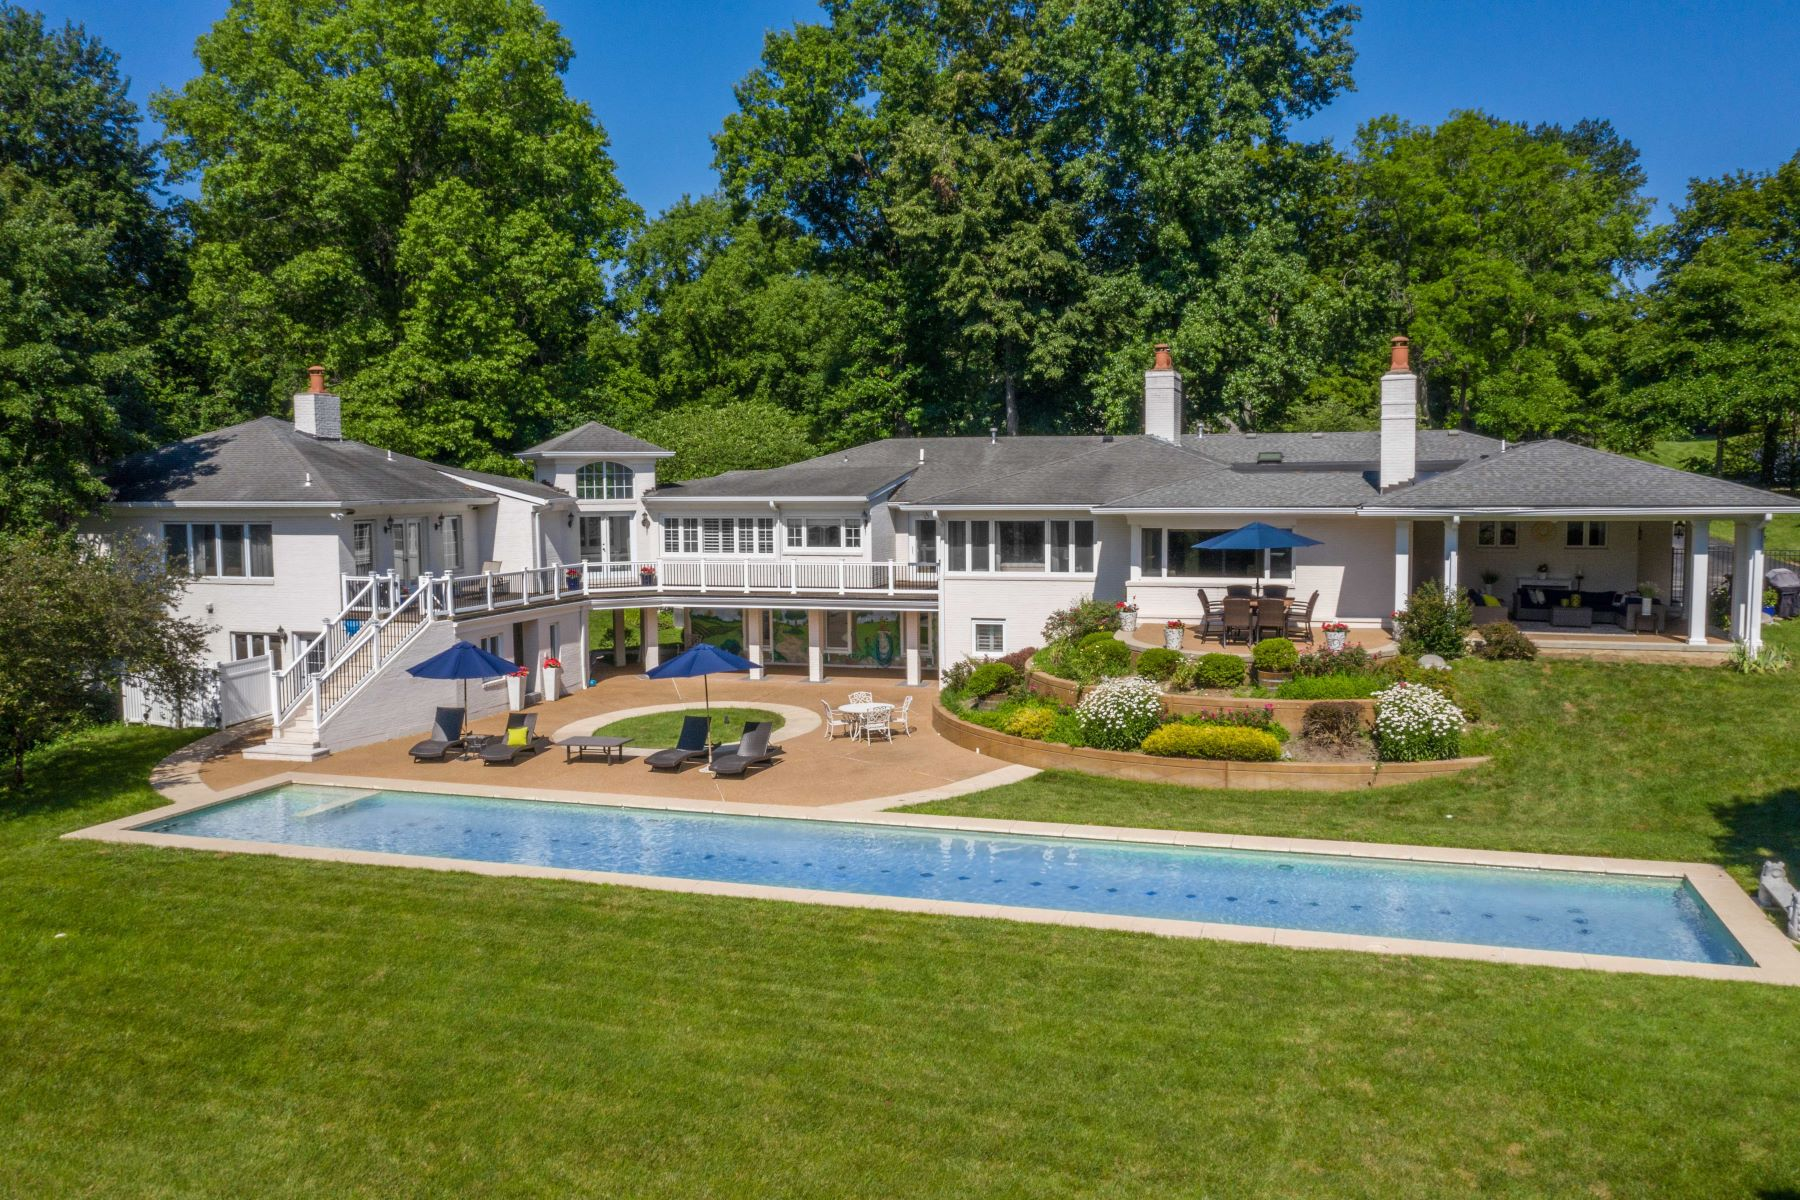 Single Family Homes для того Продажа на Exquisite Estate Nestled on over 3 Lush Acres in Ladue 16 Overbrook Drive Ladue, Миссури 63124 Соединенные Штаты